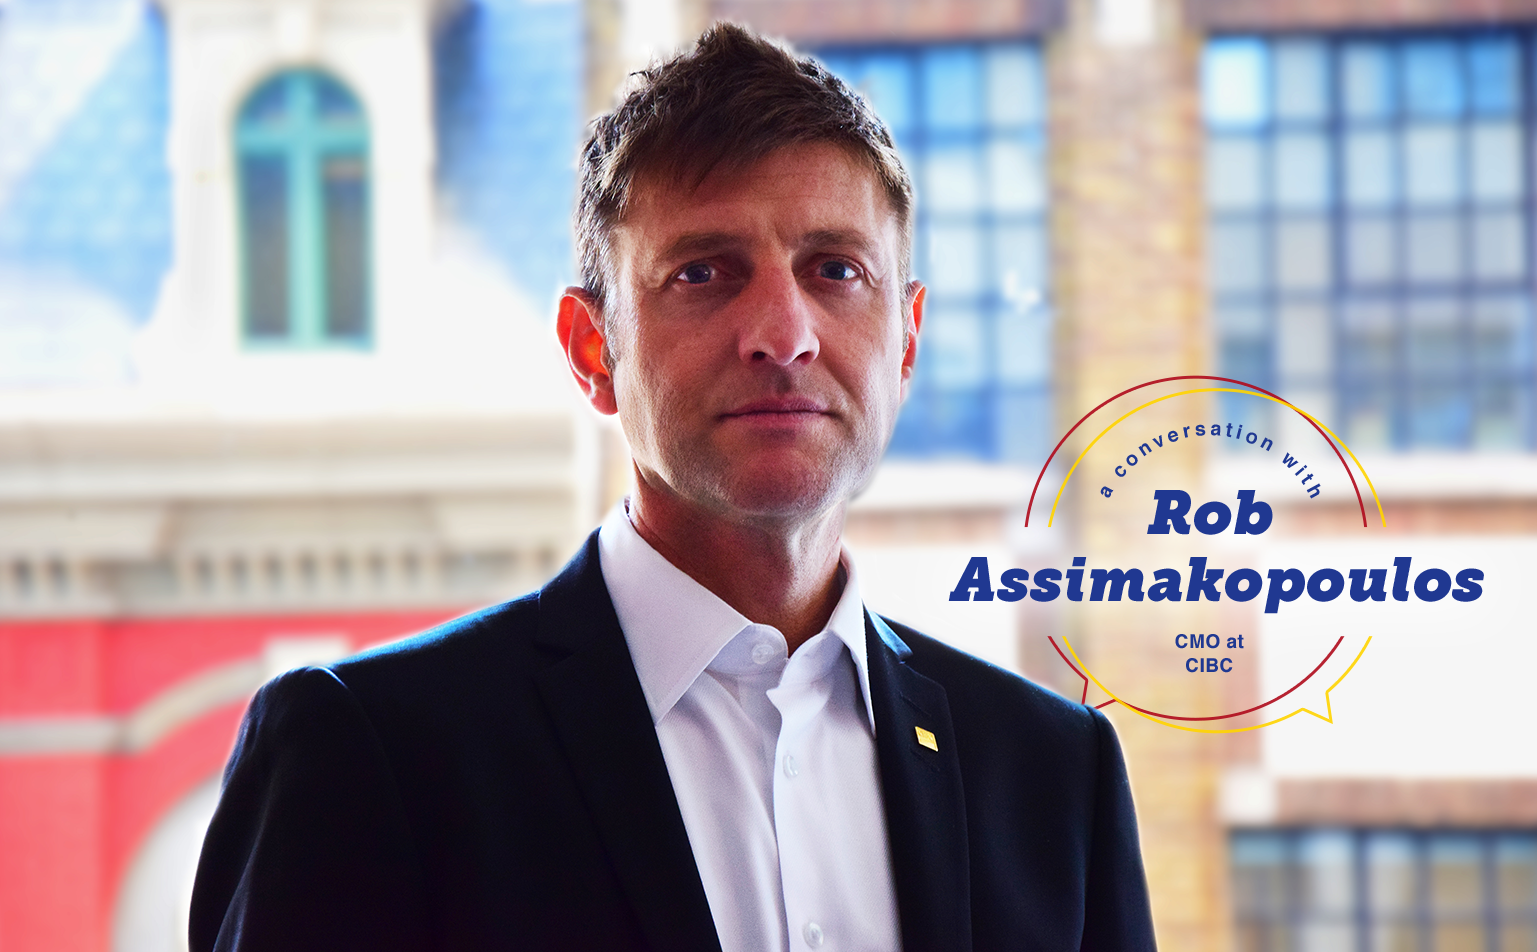 Keep Moving Forward: In Conversation w/ Rob Assimakopoulos (CMO @ CIBC)